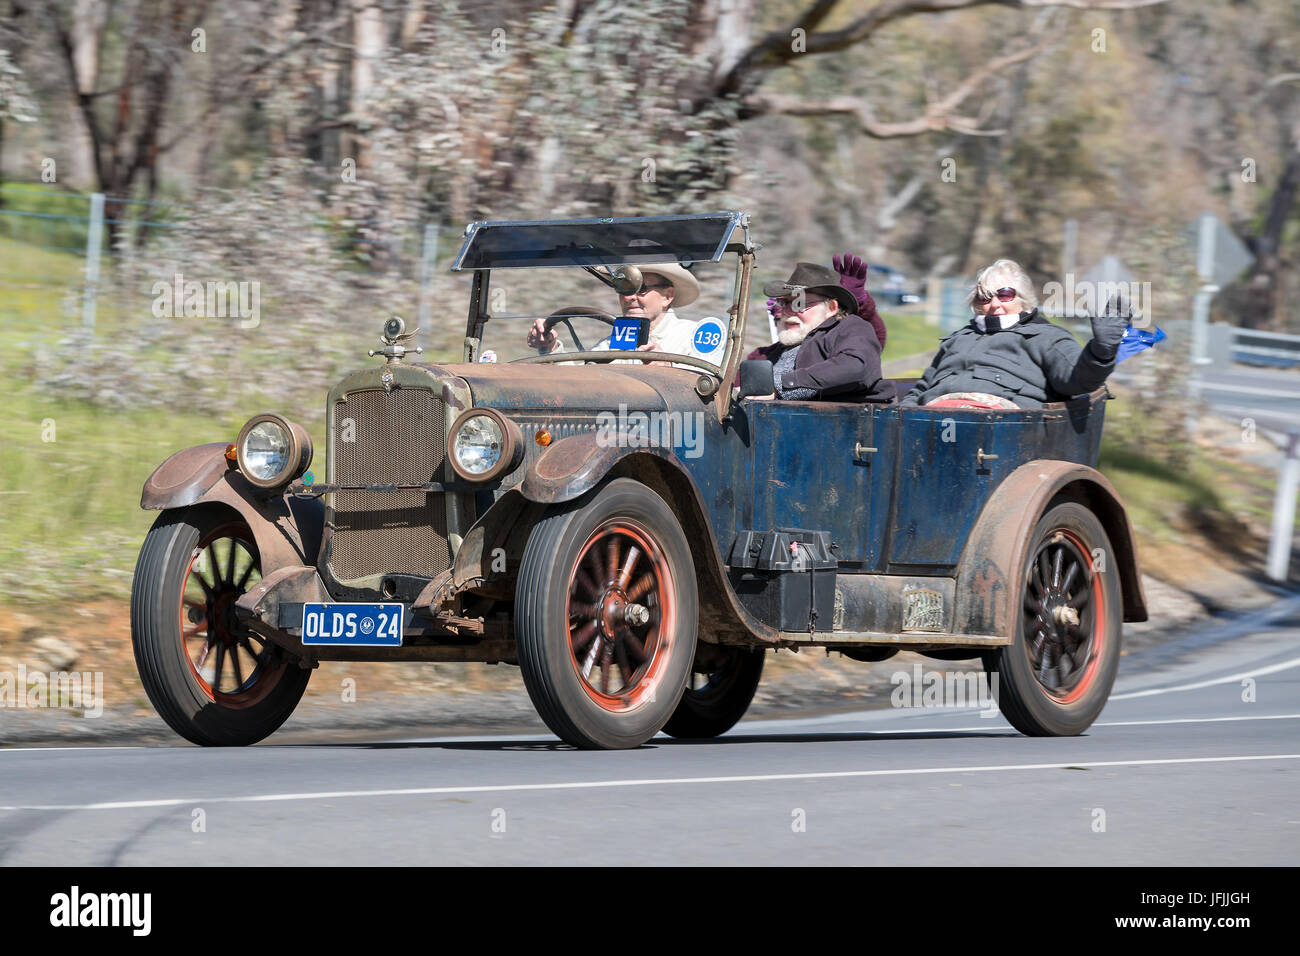 Oldsmobile Cars Stock Photos Images Alamy 1941 Club Coupe Vintage 1924 30 Tourer Driving On Country Roads Near The Town Of Birdwood South